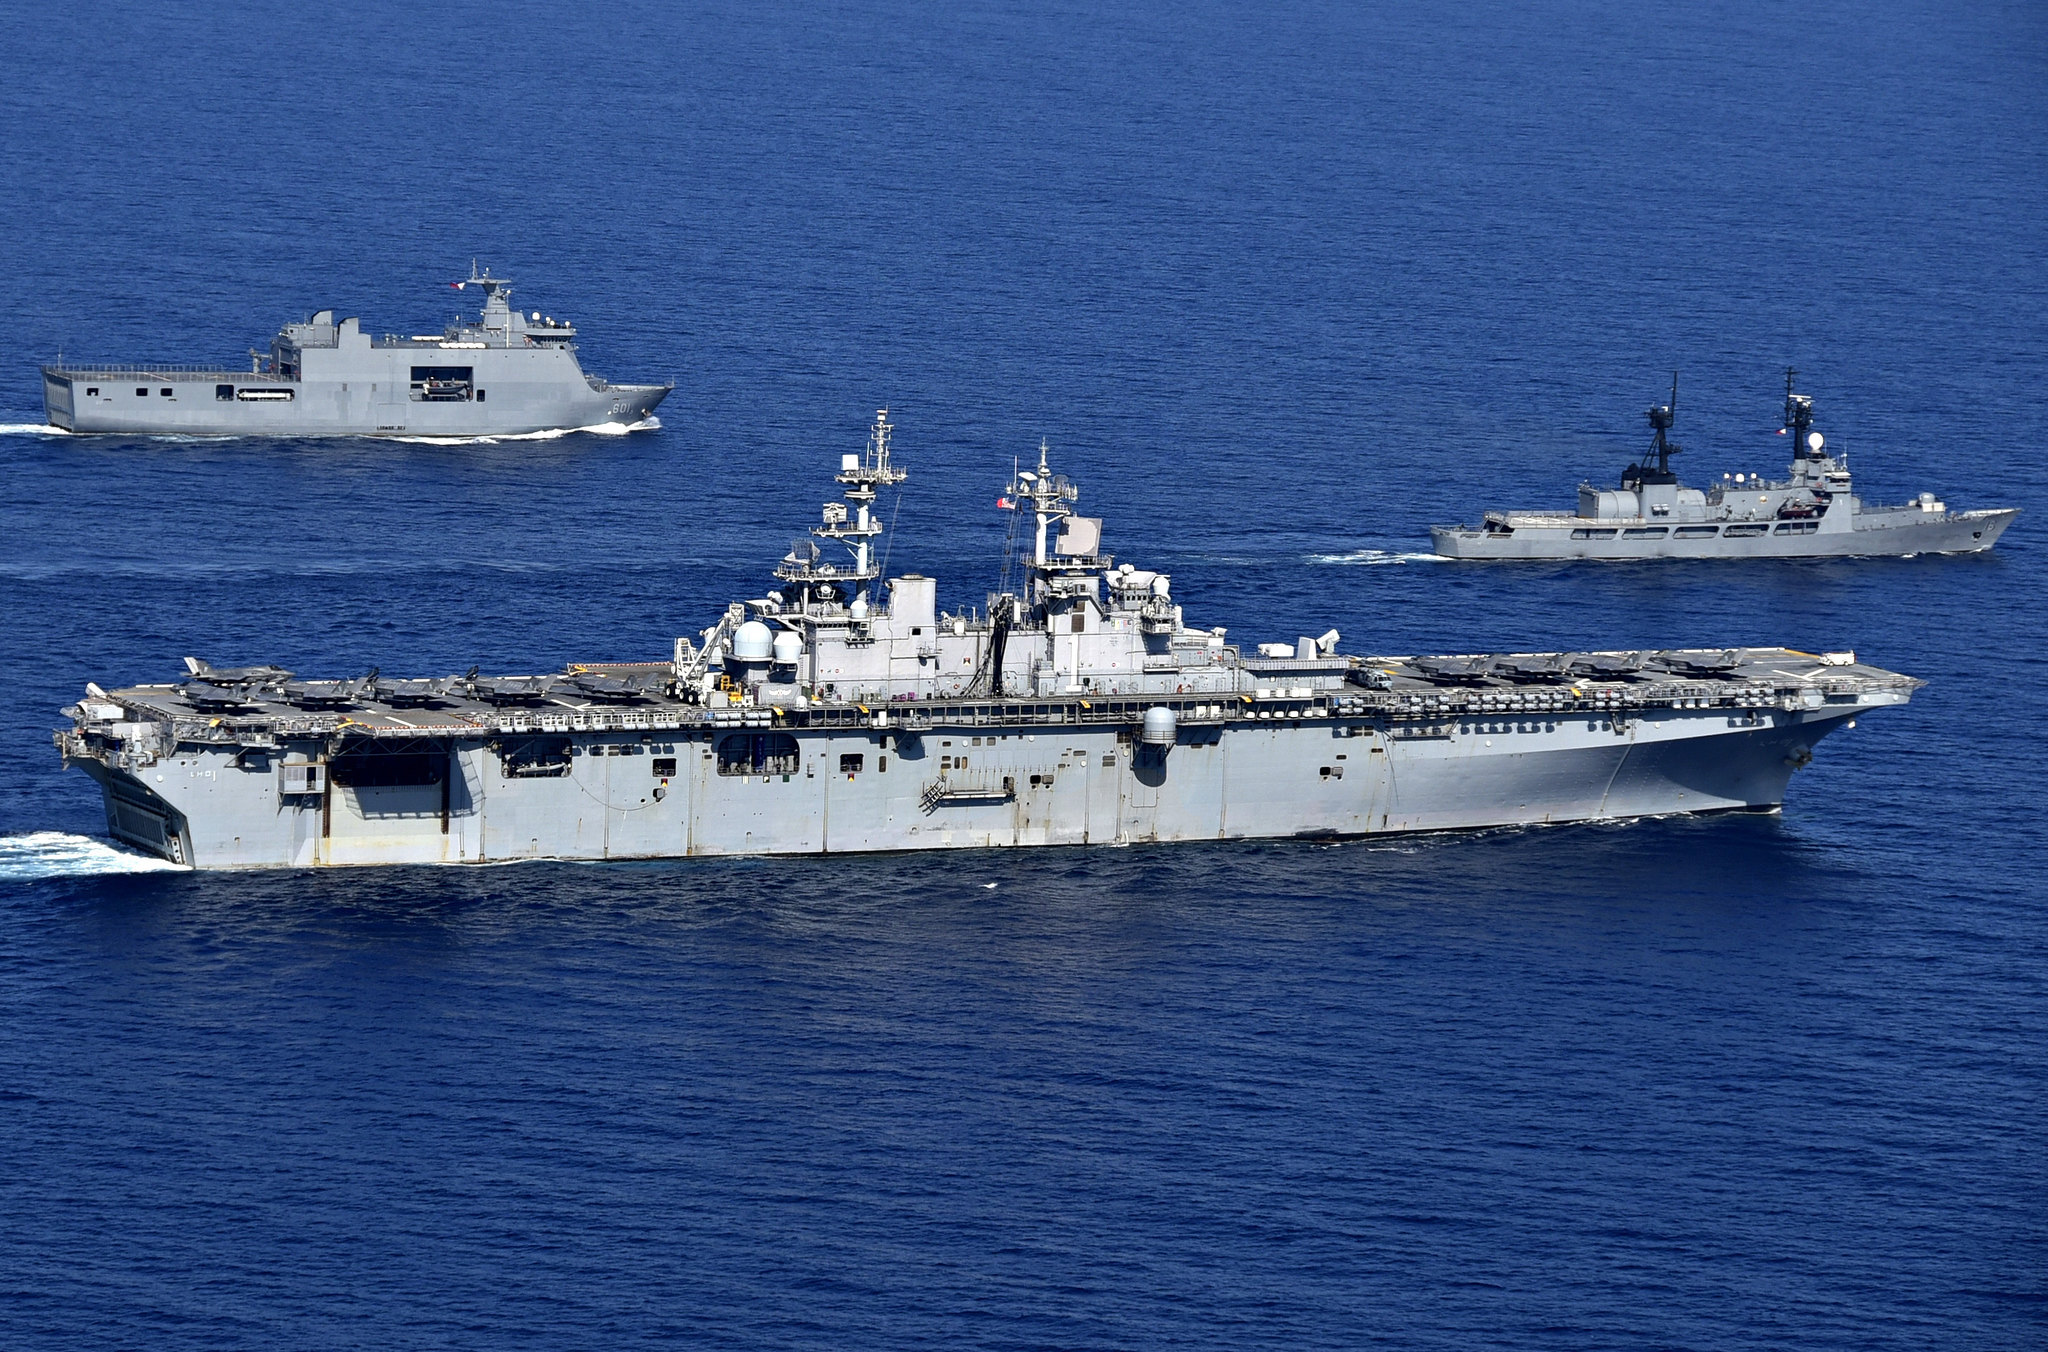 The U.S. Navy Has a Serious Problem: Too Few Ships